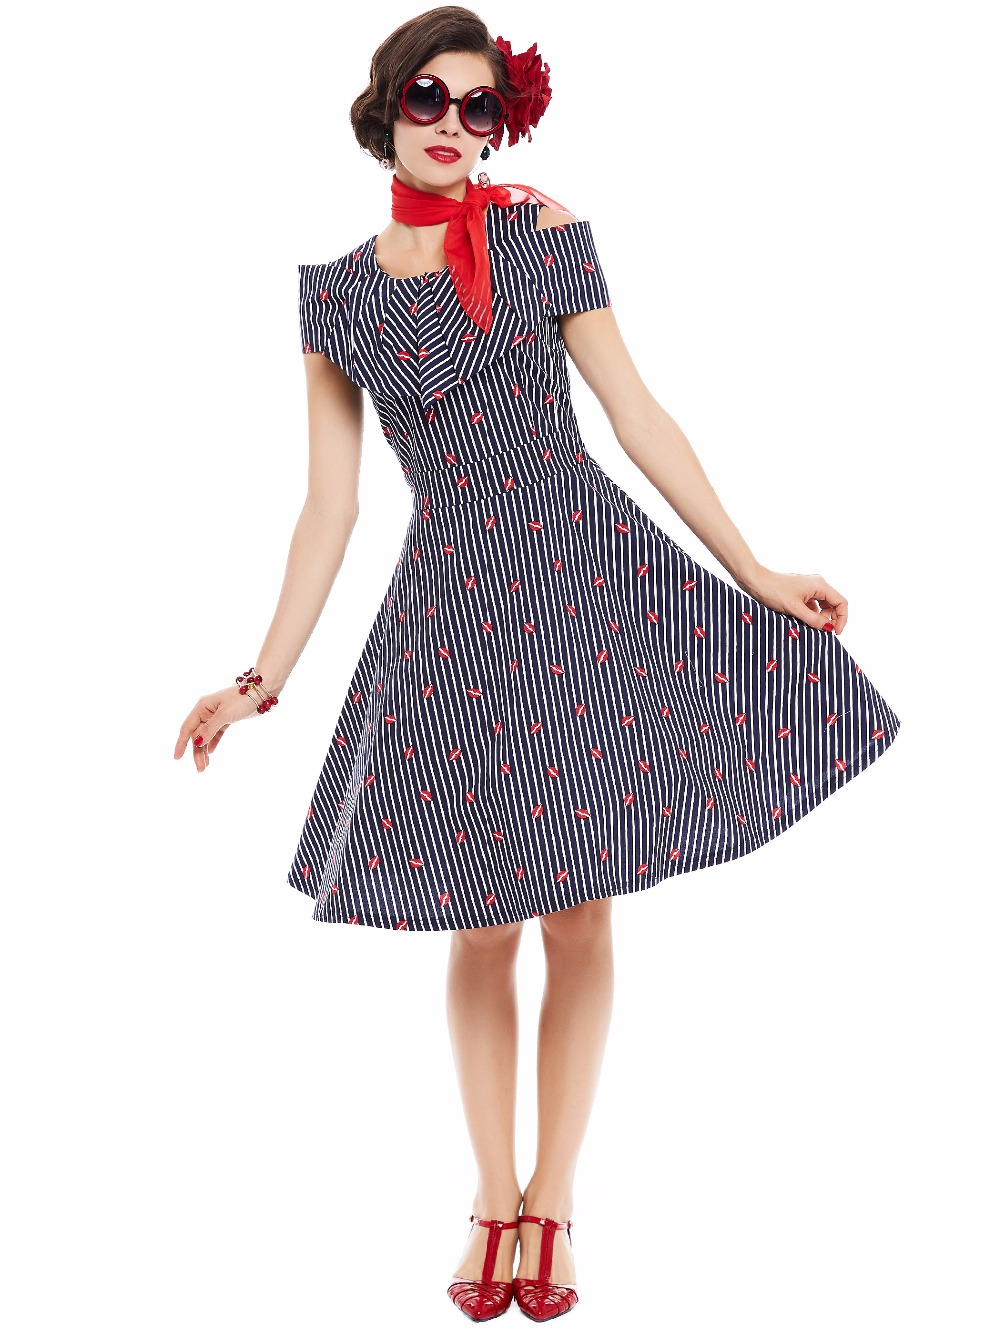 Sisjuly Vintage Dresses Design Knee High Summer Dress Red Lips Patterned Sqaure Collar Strap Dress For